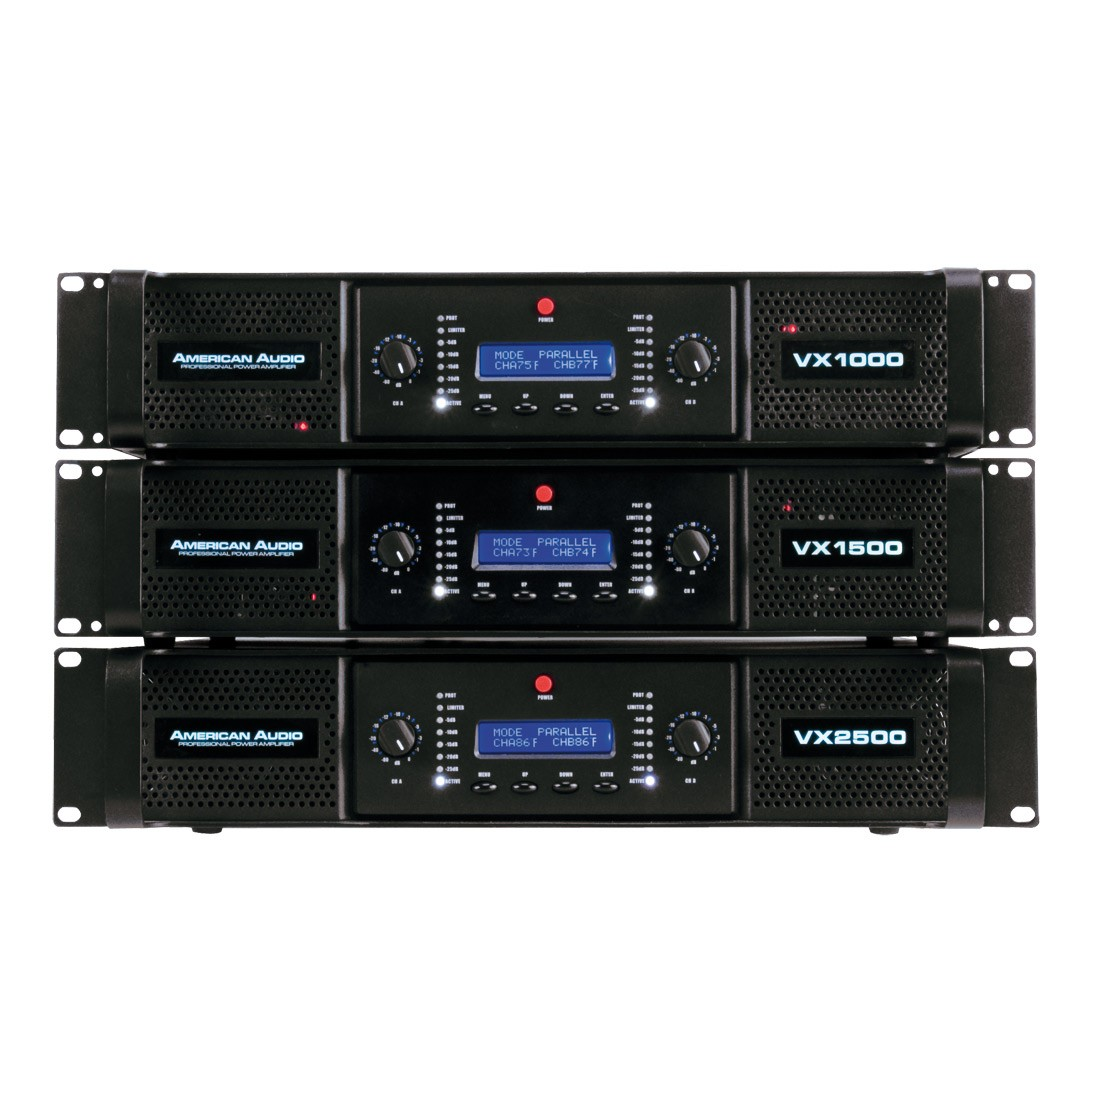 VX-1500 Amplifier - Product Archive Audio - Audio ...